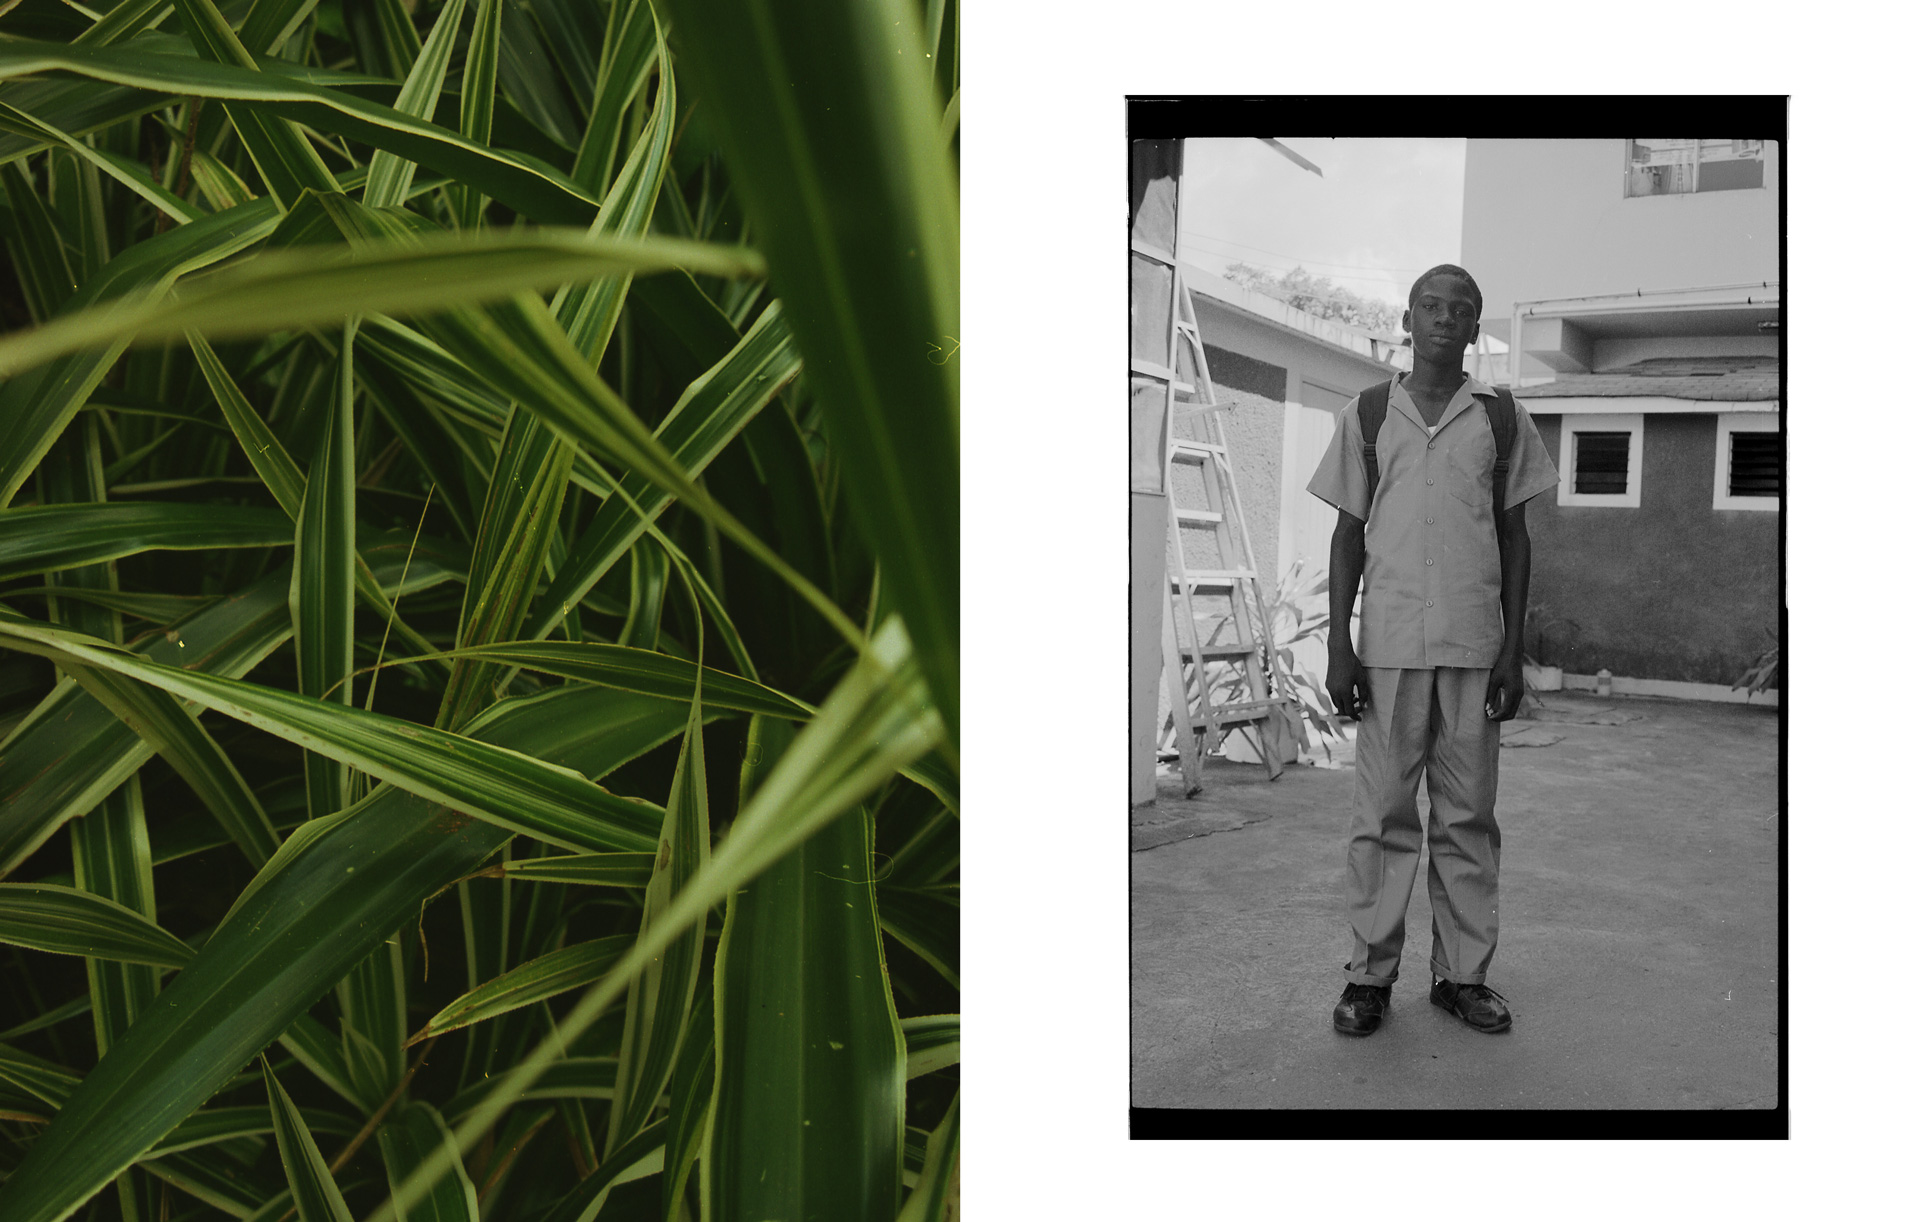 montage of tropical leaves with picture of young jamaican boy in school uniform with his backpack looking at camera by Oumayma B Tanfous in Jamaica